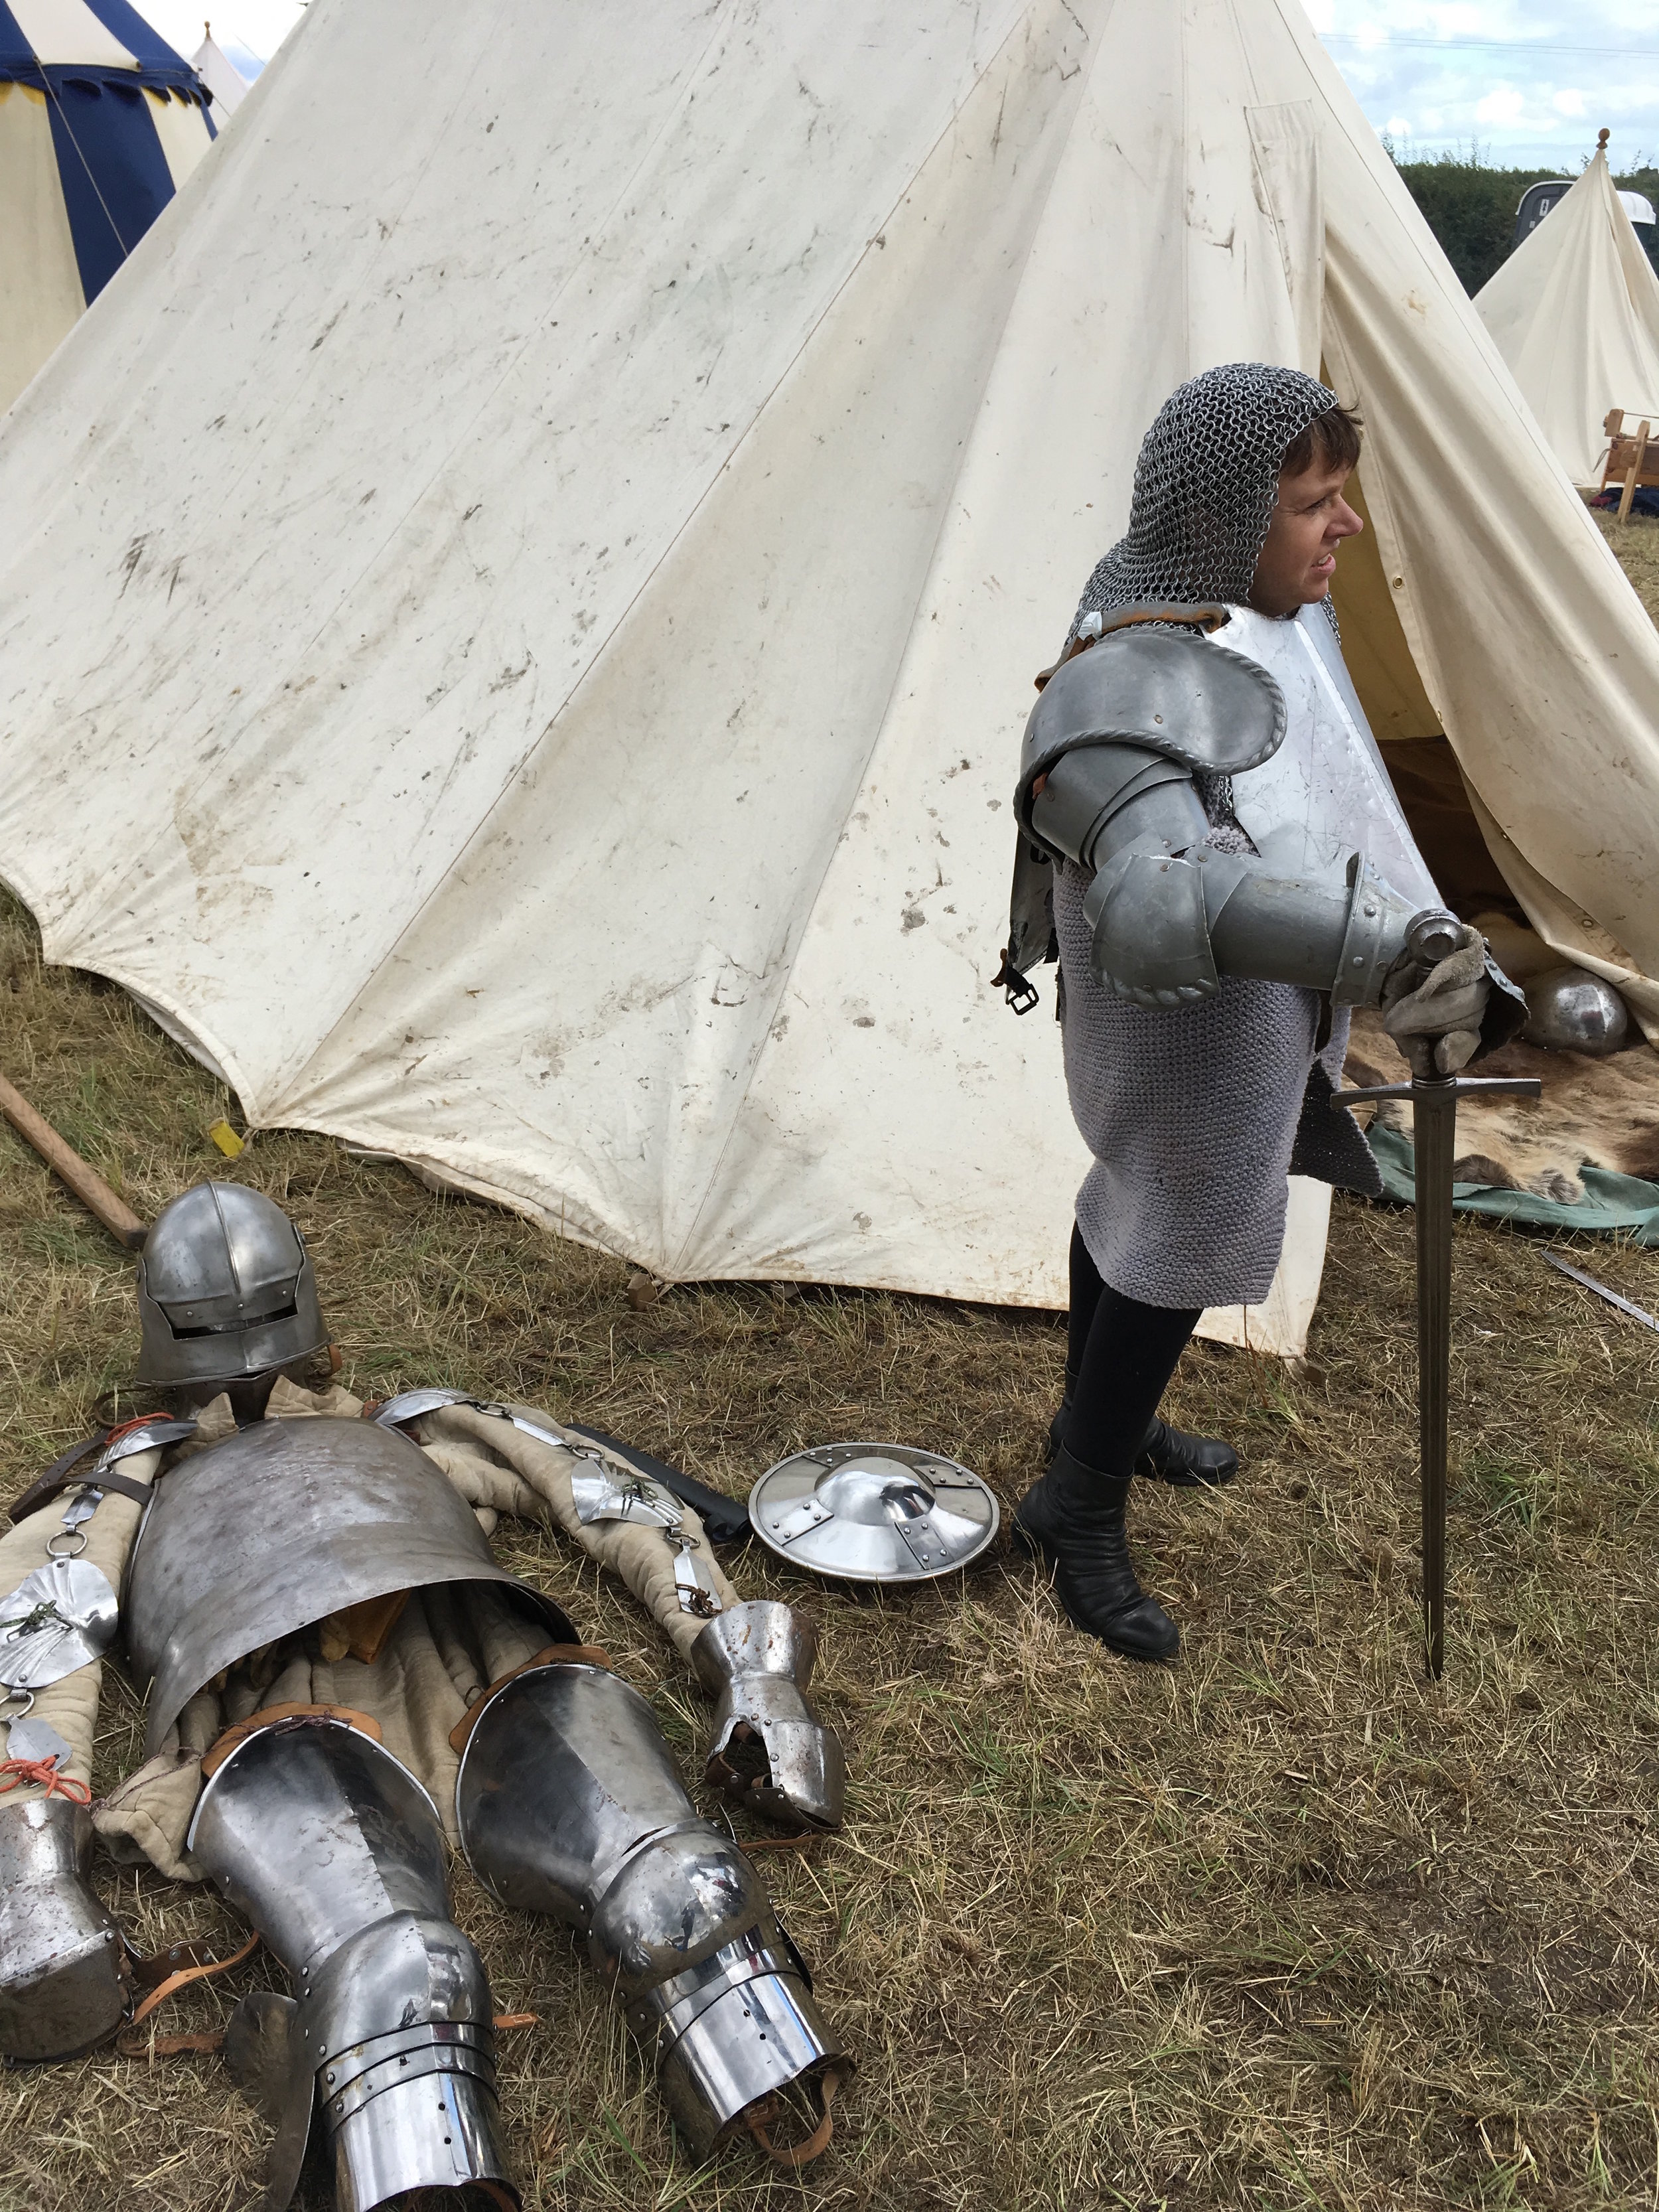 Sara Beer at the 2017 re-enactment of the Battle of Bosworth